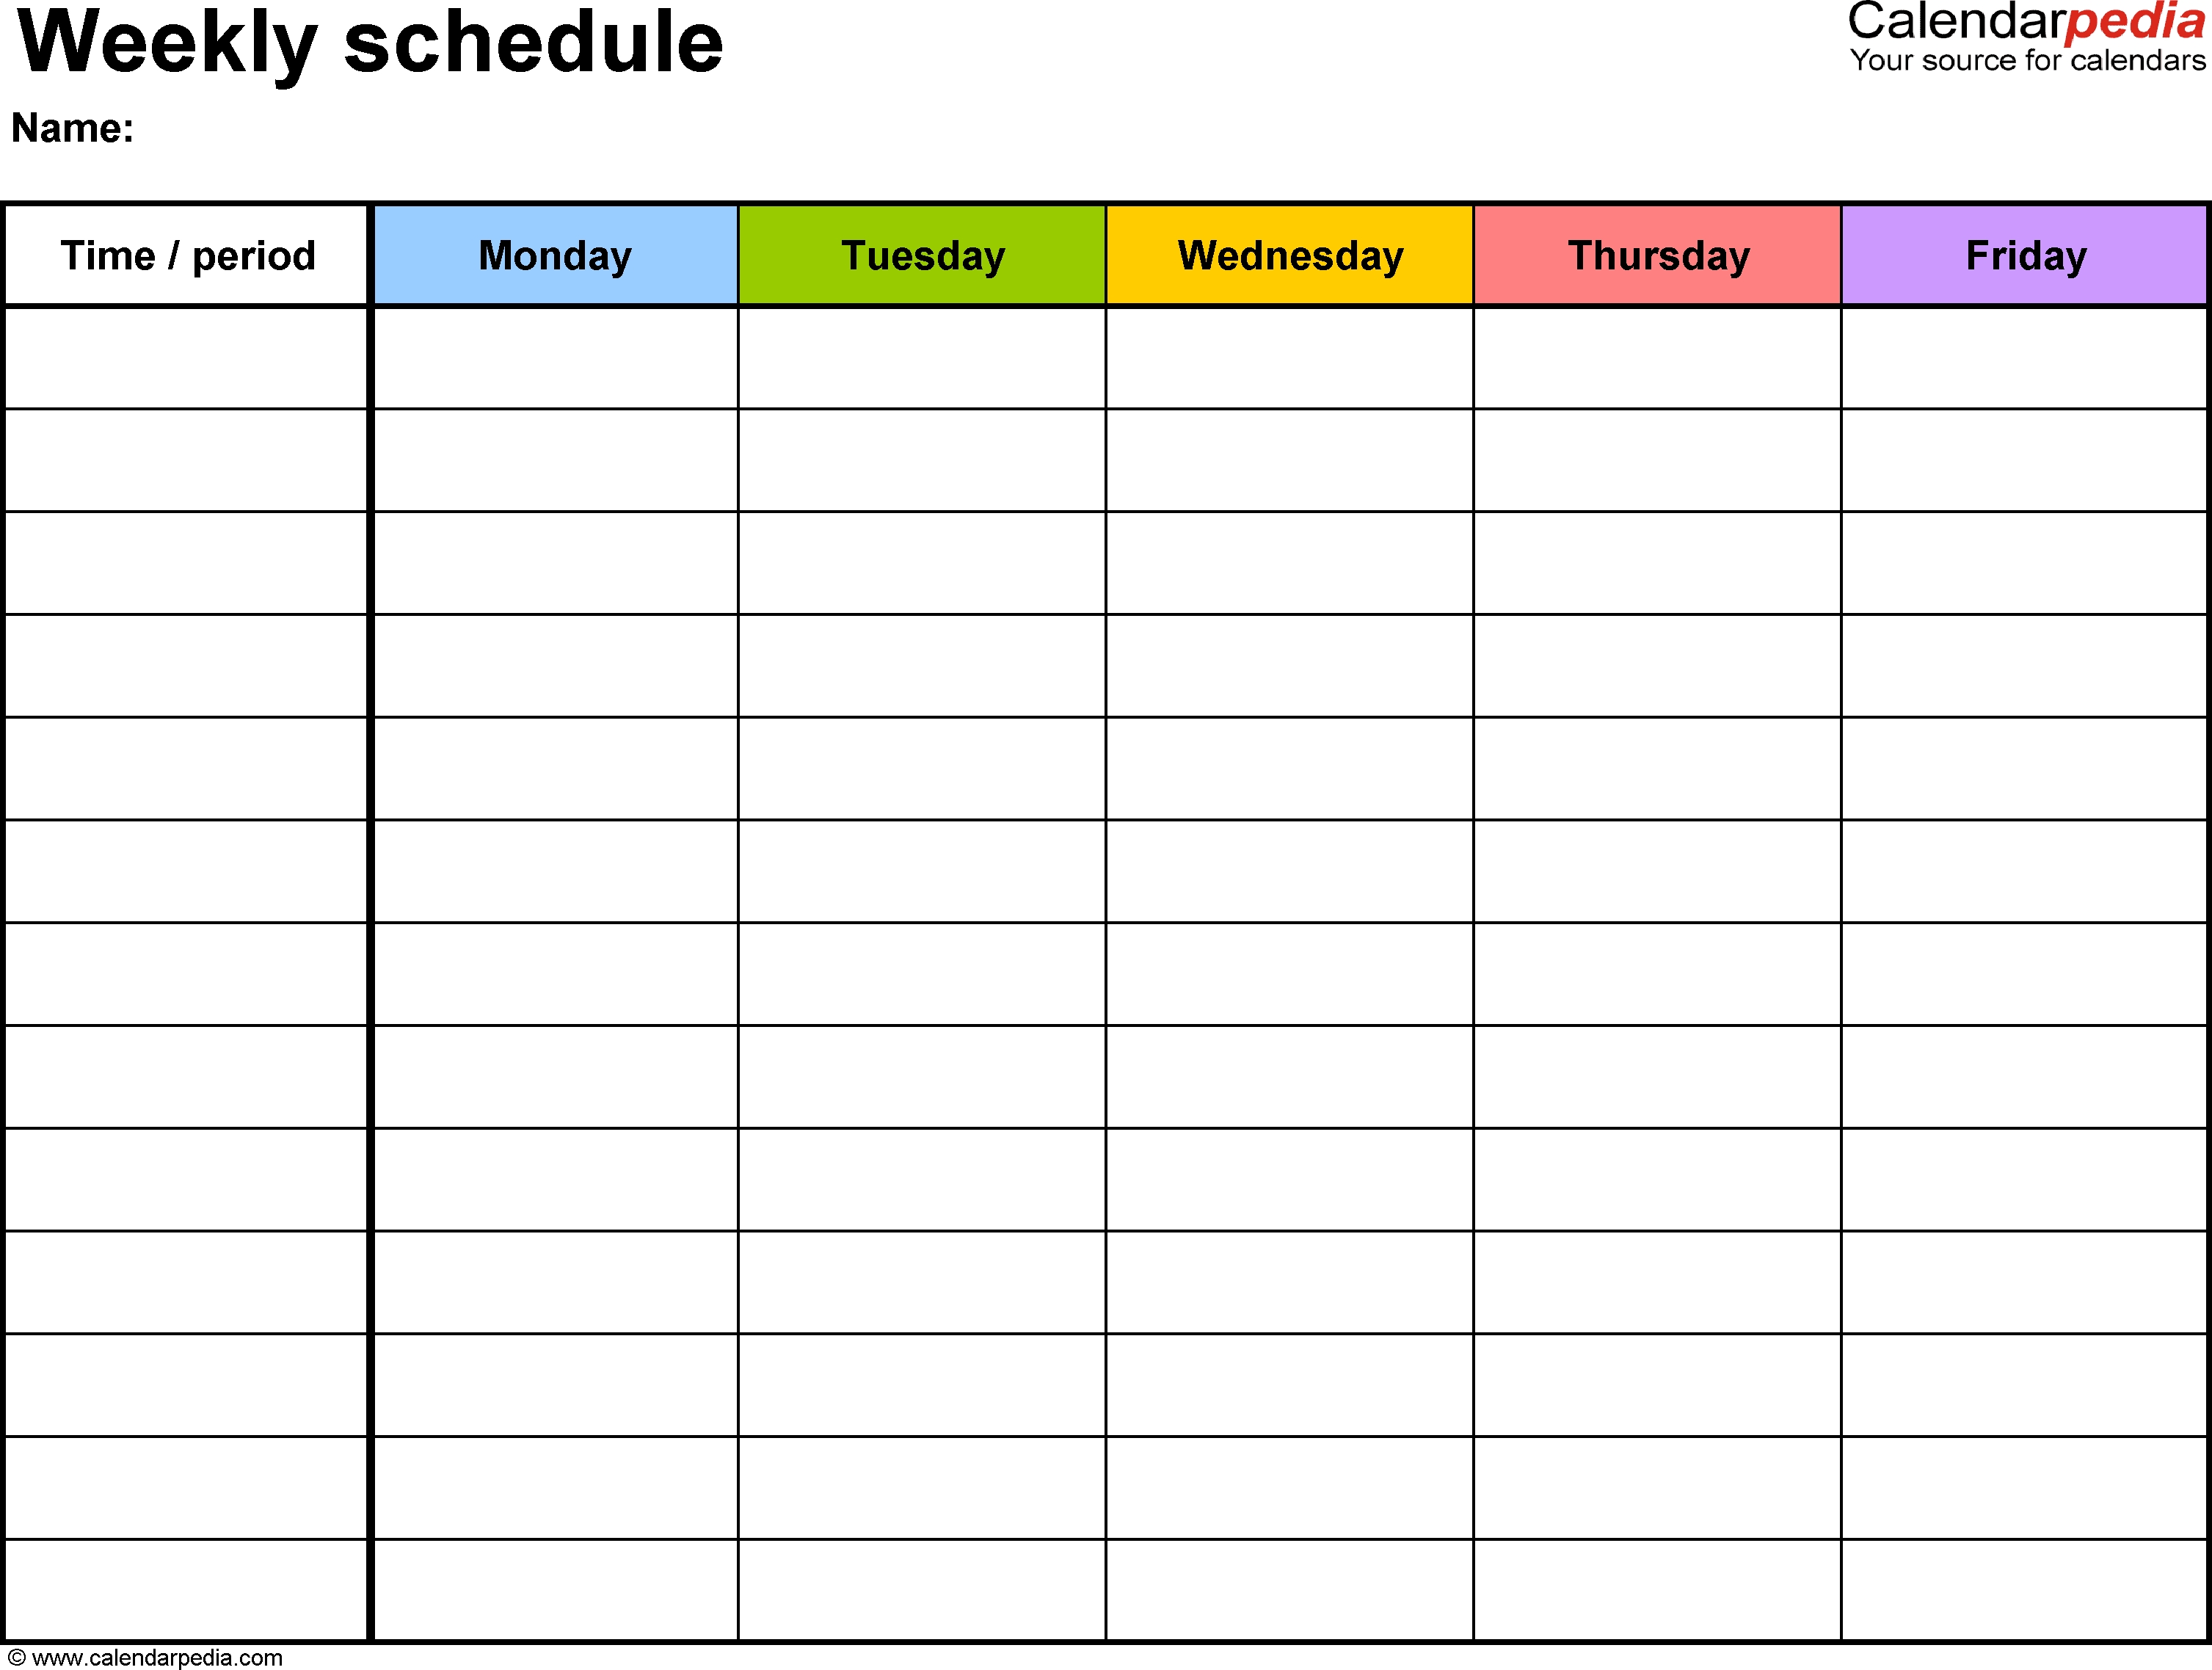 Free Weekly Schedule Templates For Word - 18 Templates intended for Monthly Calendars Monday Through Friday